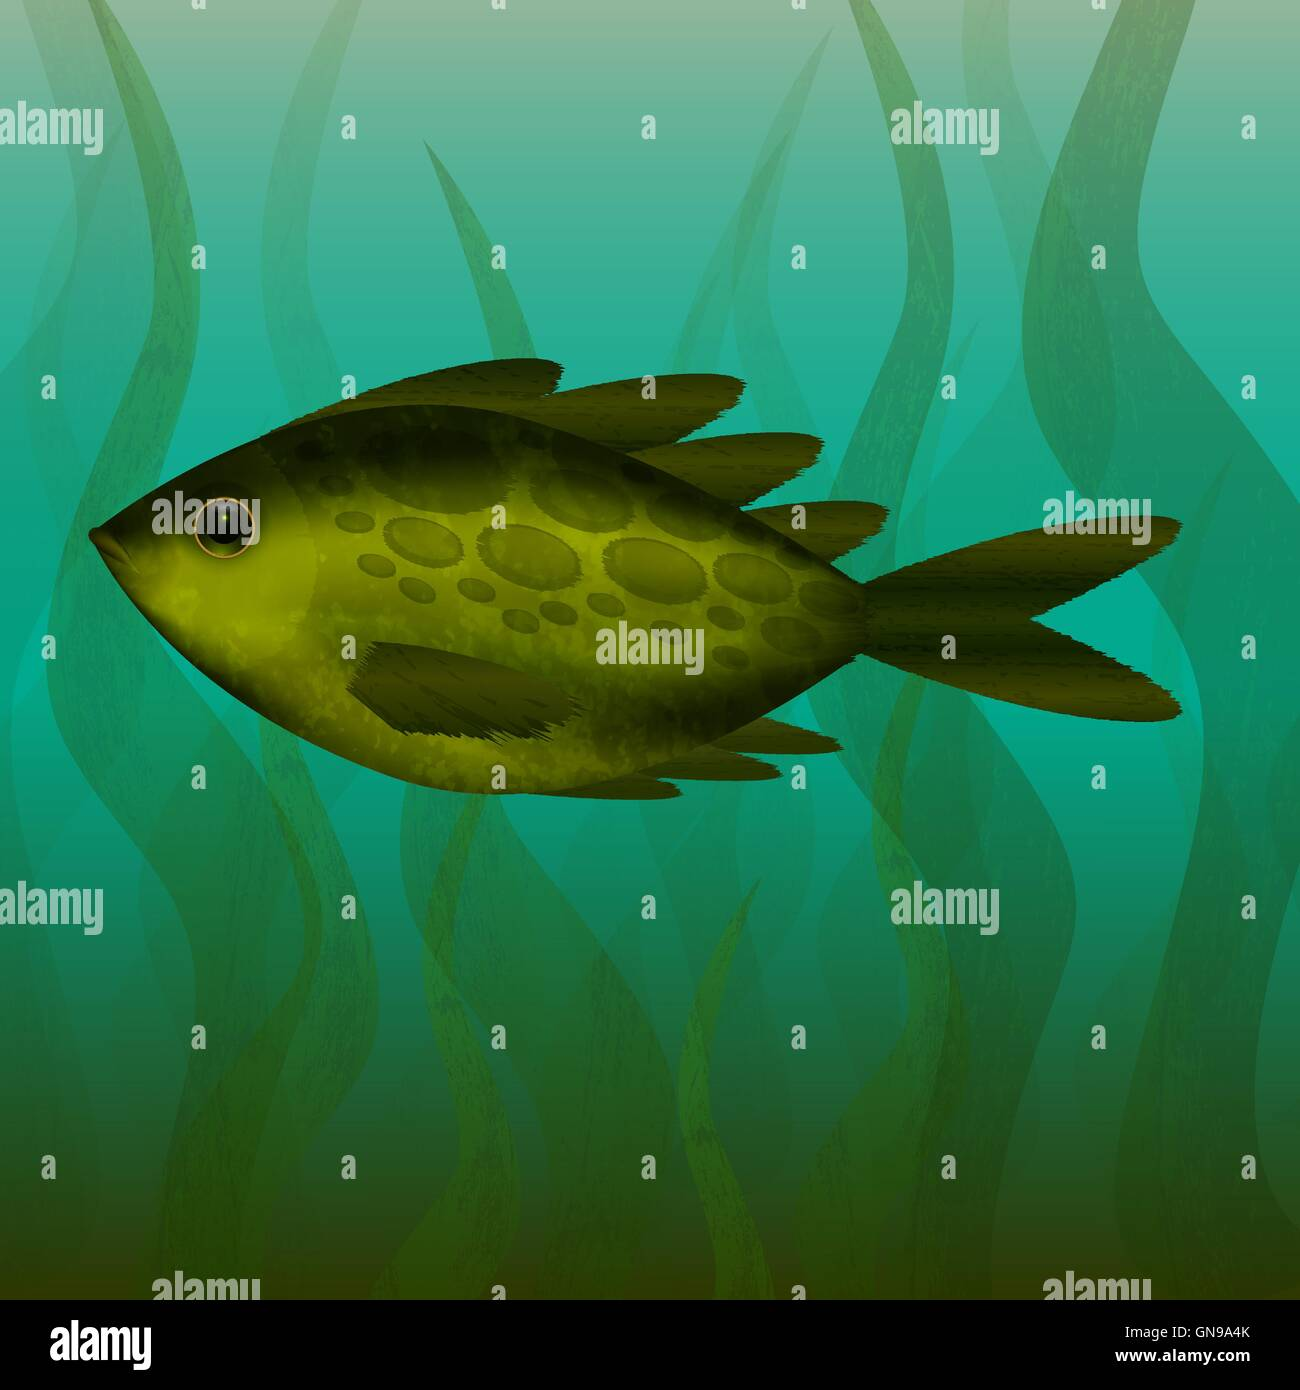 River fish. Under the water. Underwater plants. - Stock Vector